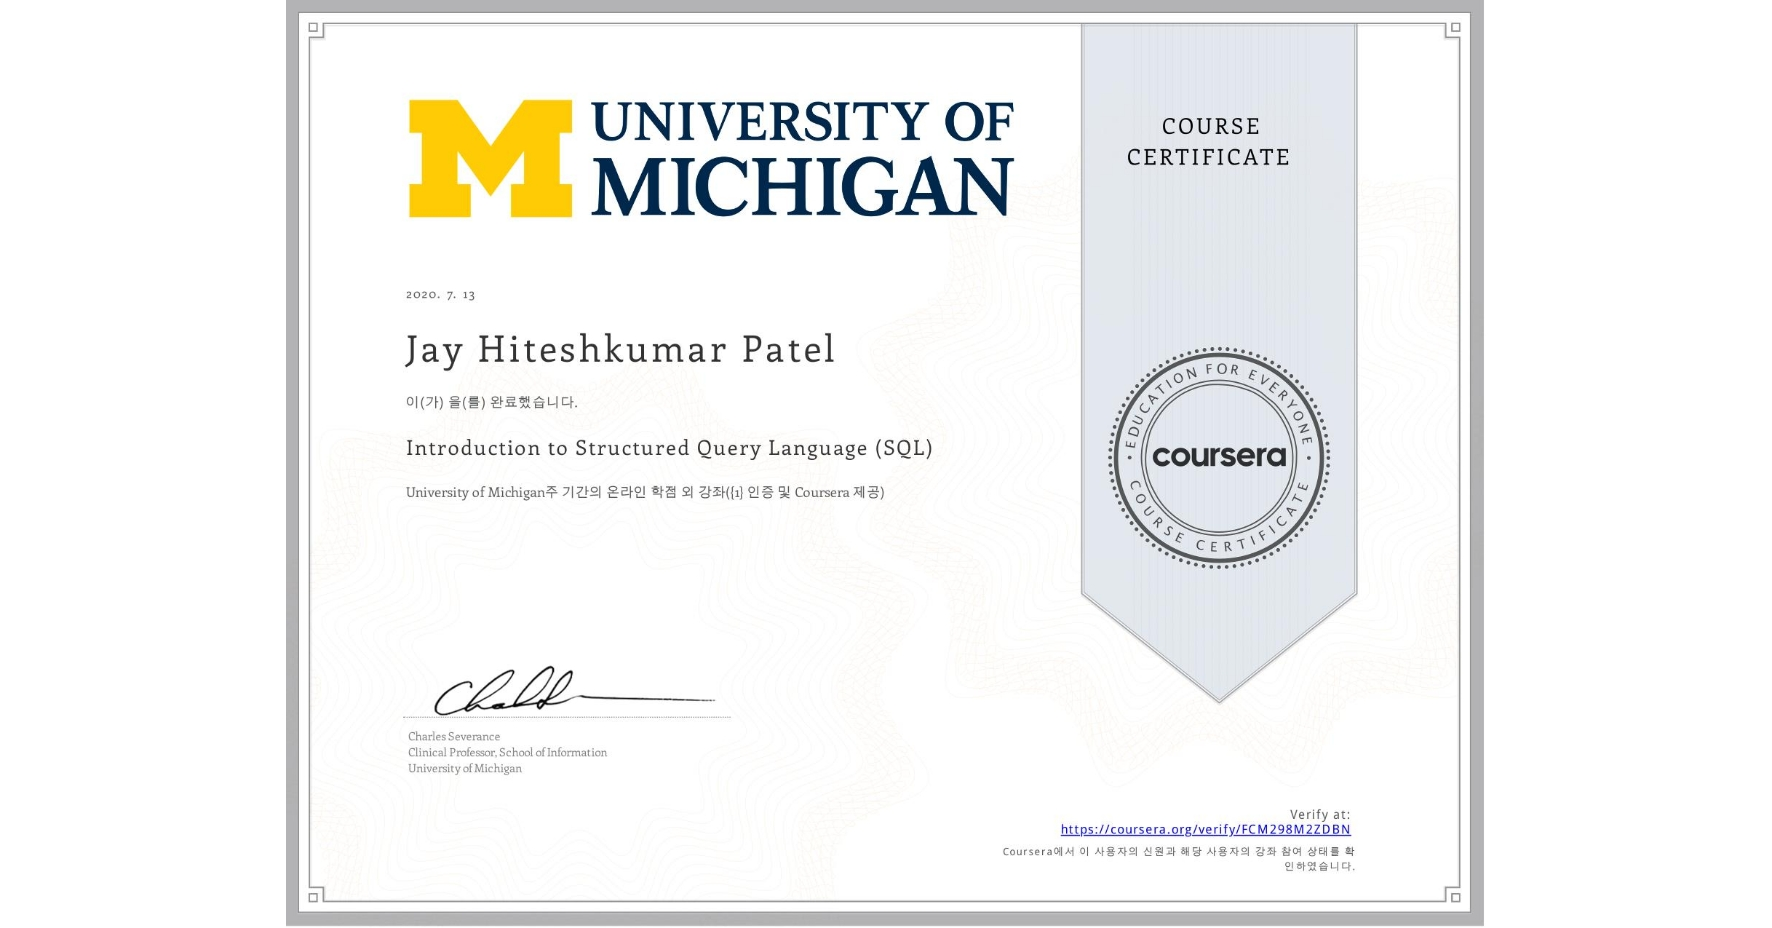 View certificate for Jay Hiteshkumar Patel, Introduction to Structured Query Language (SQL), an online non-credit course authorized by University of Michigan and offered through Coursera